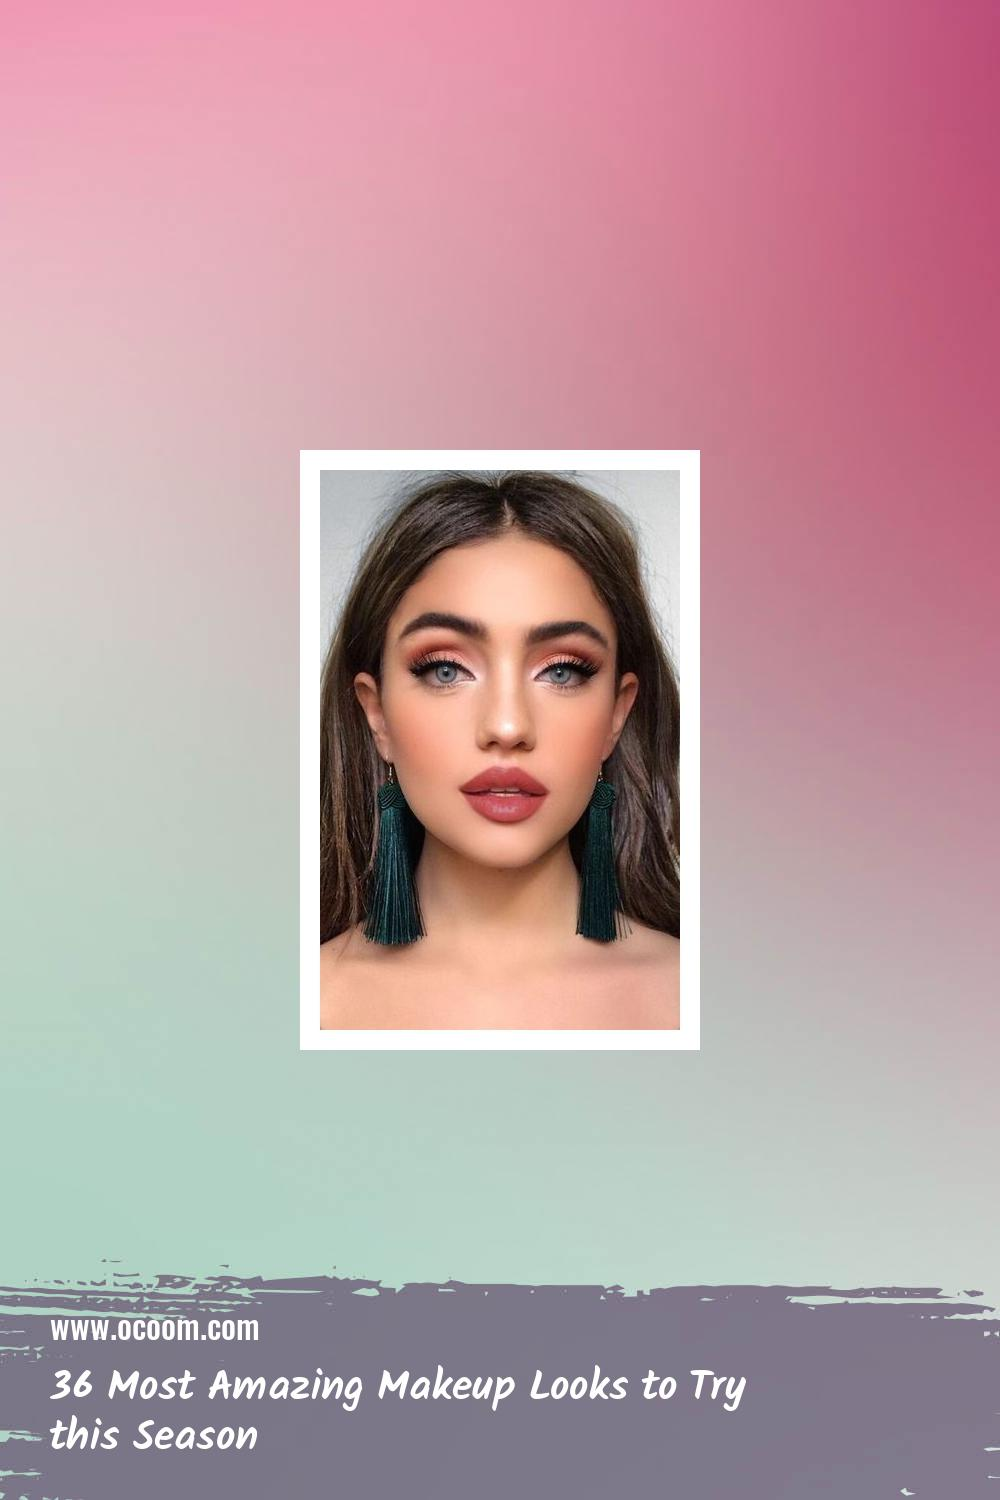 36 Most Amazing Makeup Looks to Try this Season 19